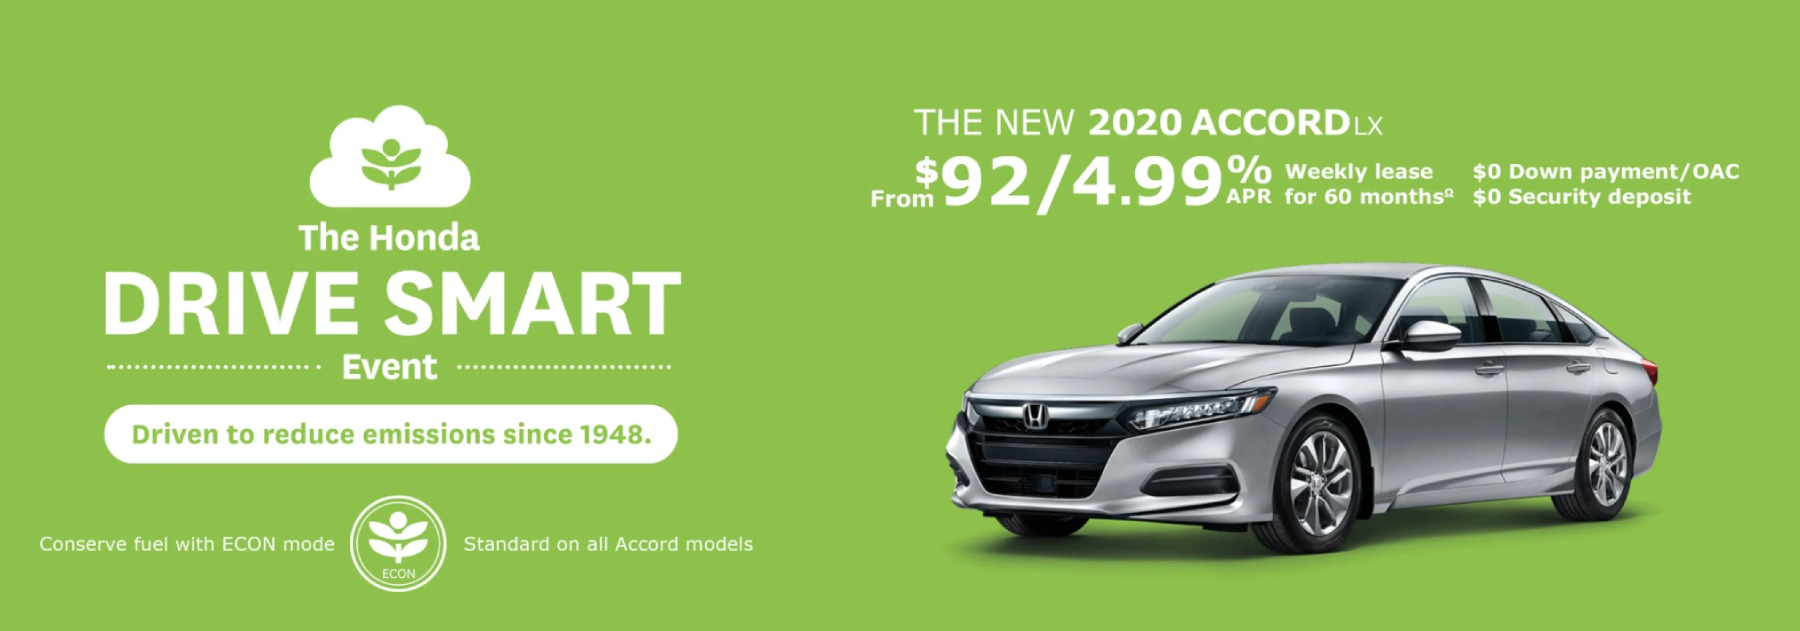 April 2020 Accord Offer